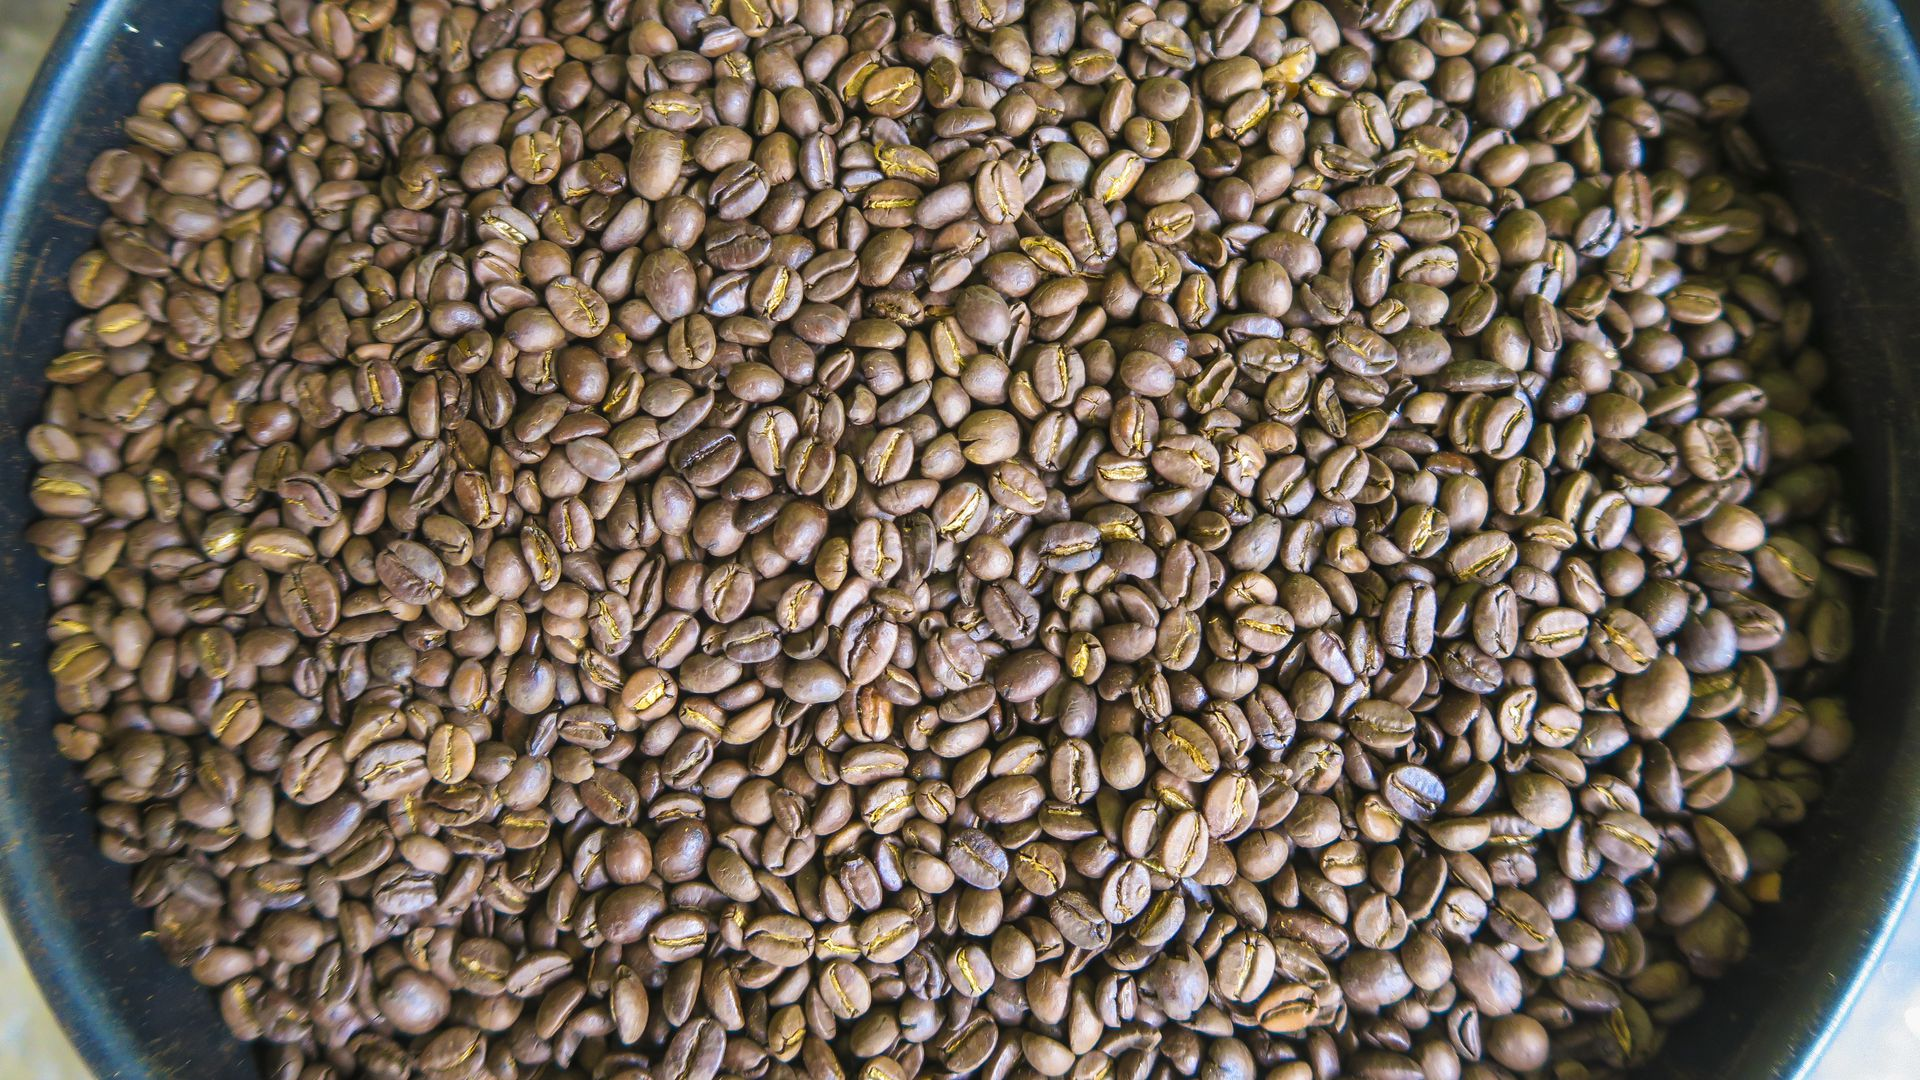 Local roasted coffee beans, Arabica, at the coffee farm La Victoria on August 19, 2016 in Minca, Colombia. The coffee is made for export. (Photo by EyesWideOpen/Getty Images)